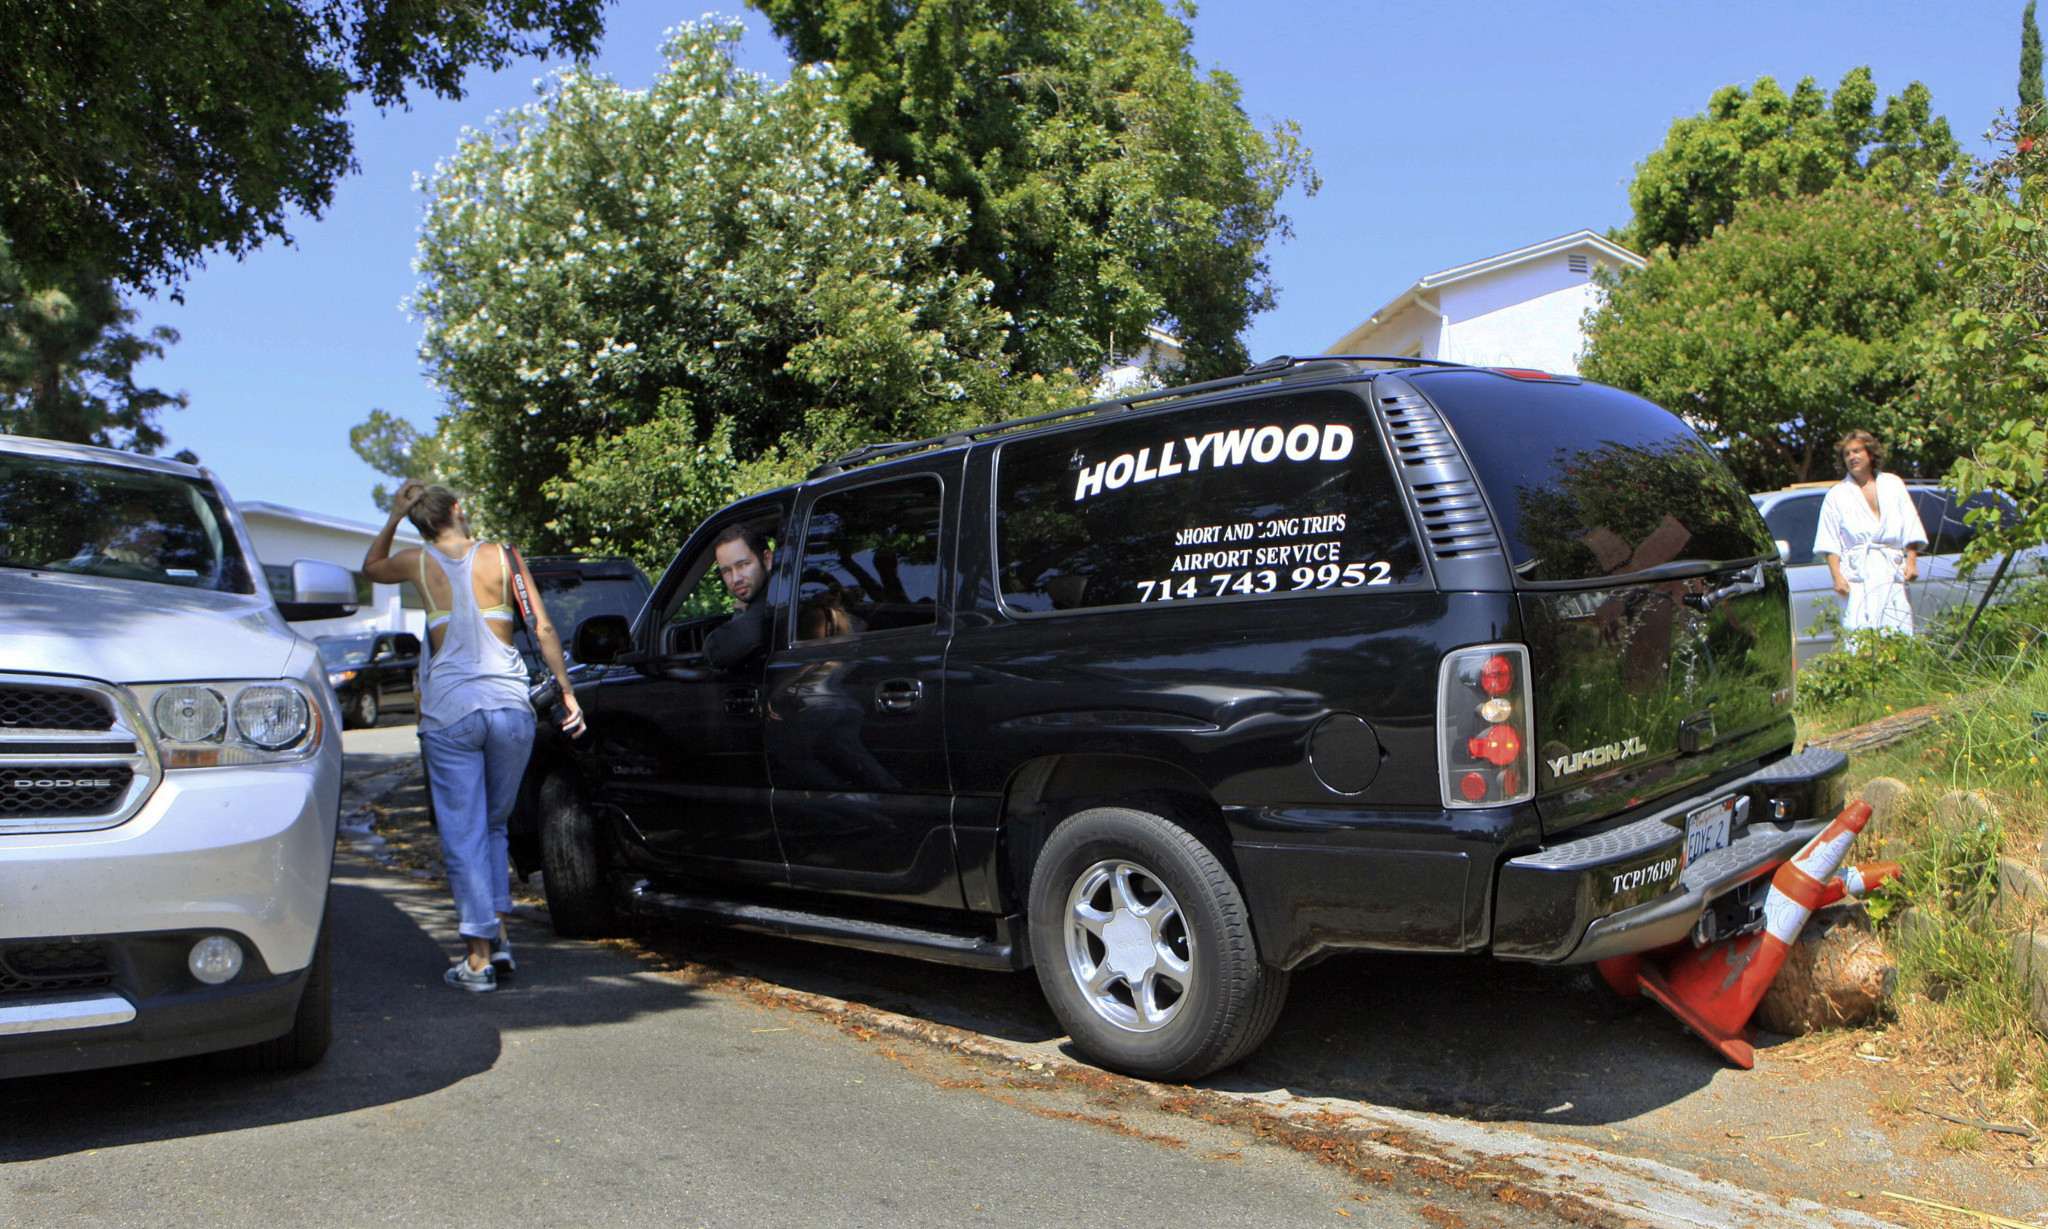 Tourists drawn to Hollywood sign, annoying neighbors - Hollywood van